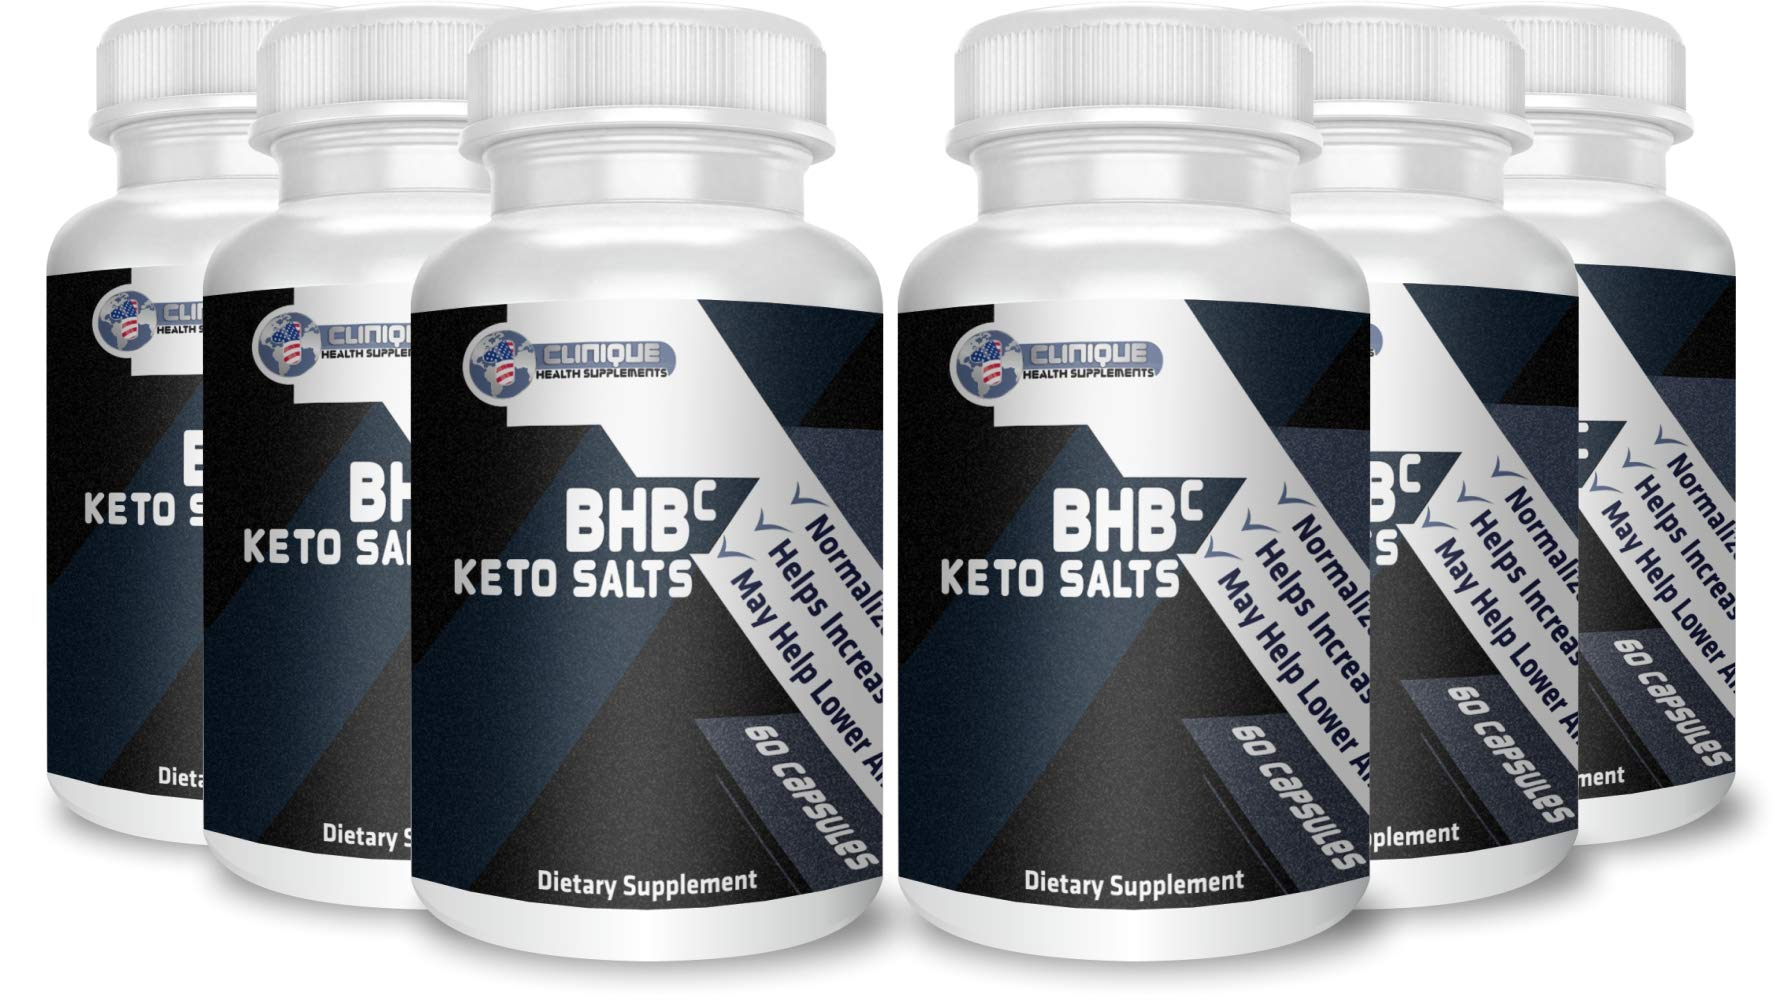 1Clinique's BHB Keto Salts | Value Pack 6 x 60 Capsules | Supports ketosis | Magnesium, Calcium, and Sodium Beta-Hydroxybutyrate | Pure Energy Source | Made in USA